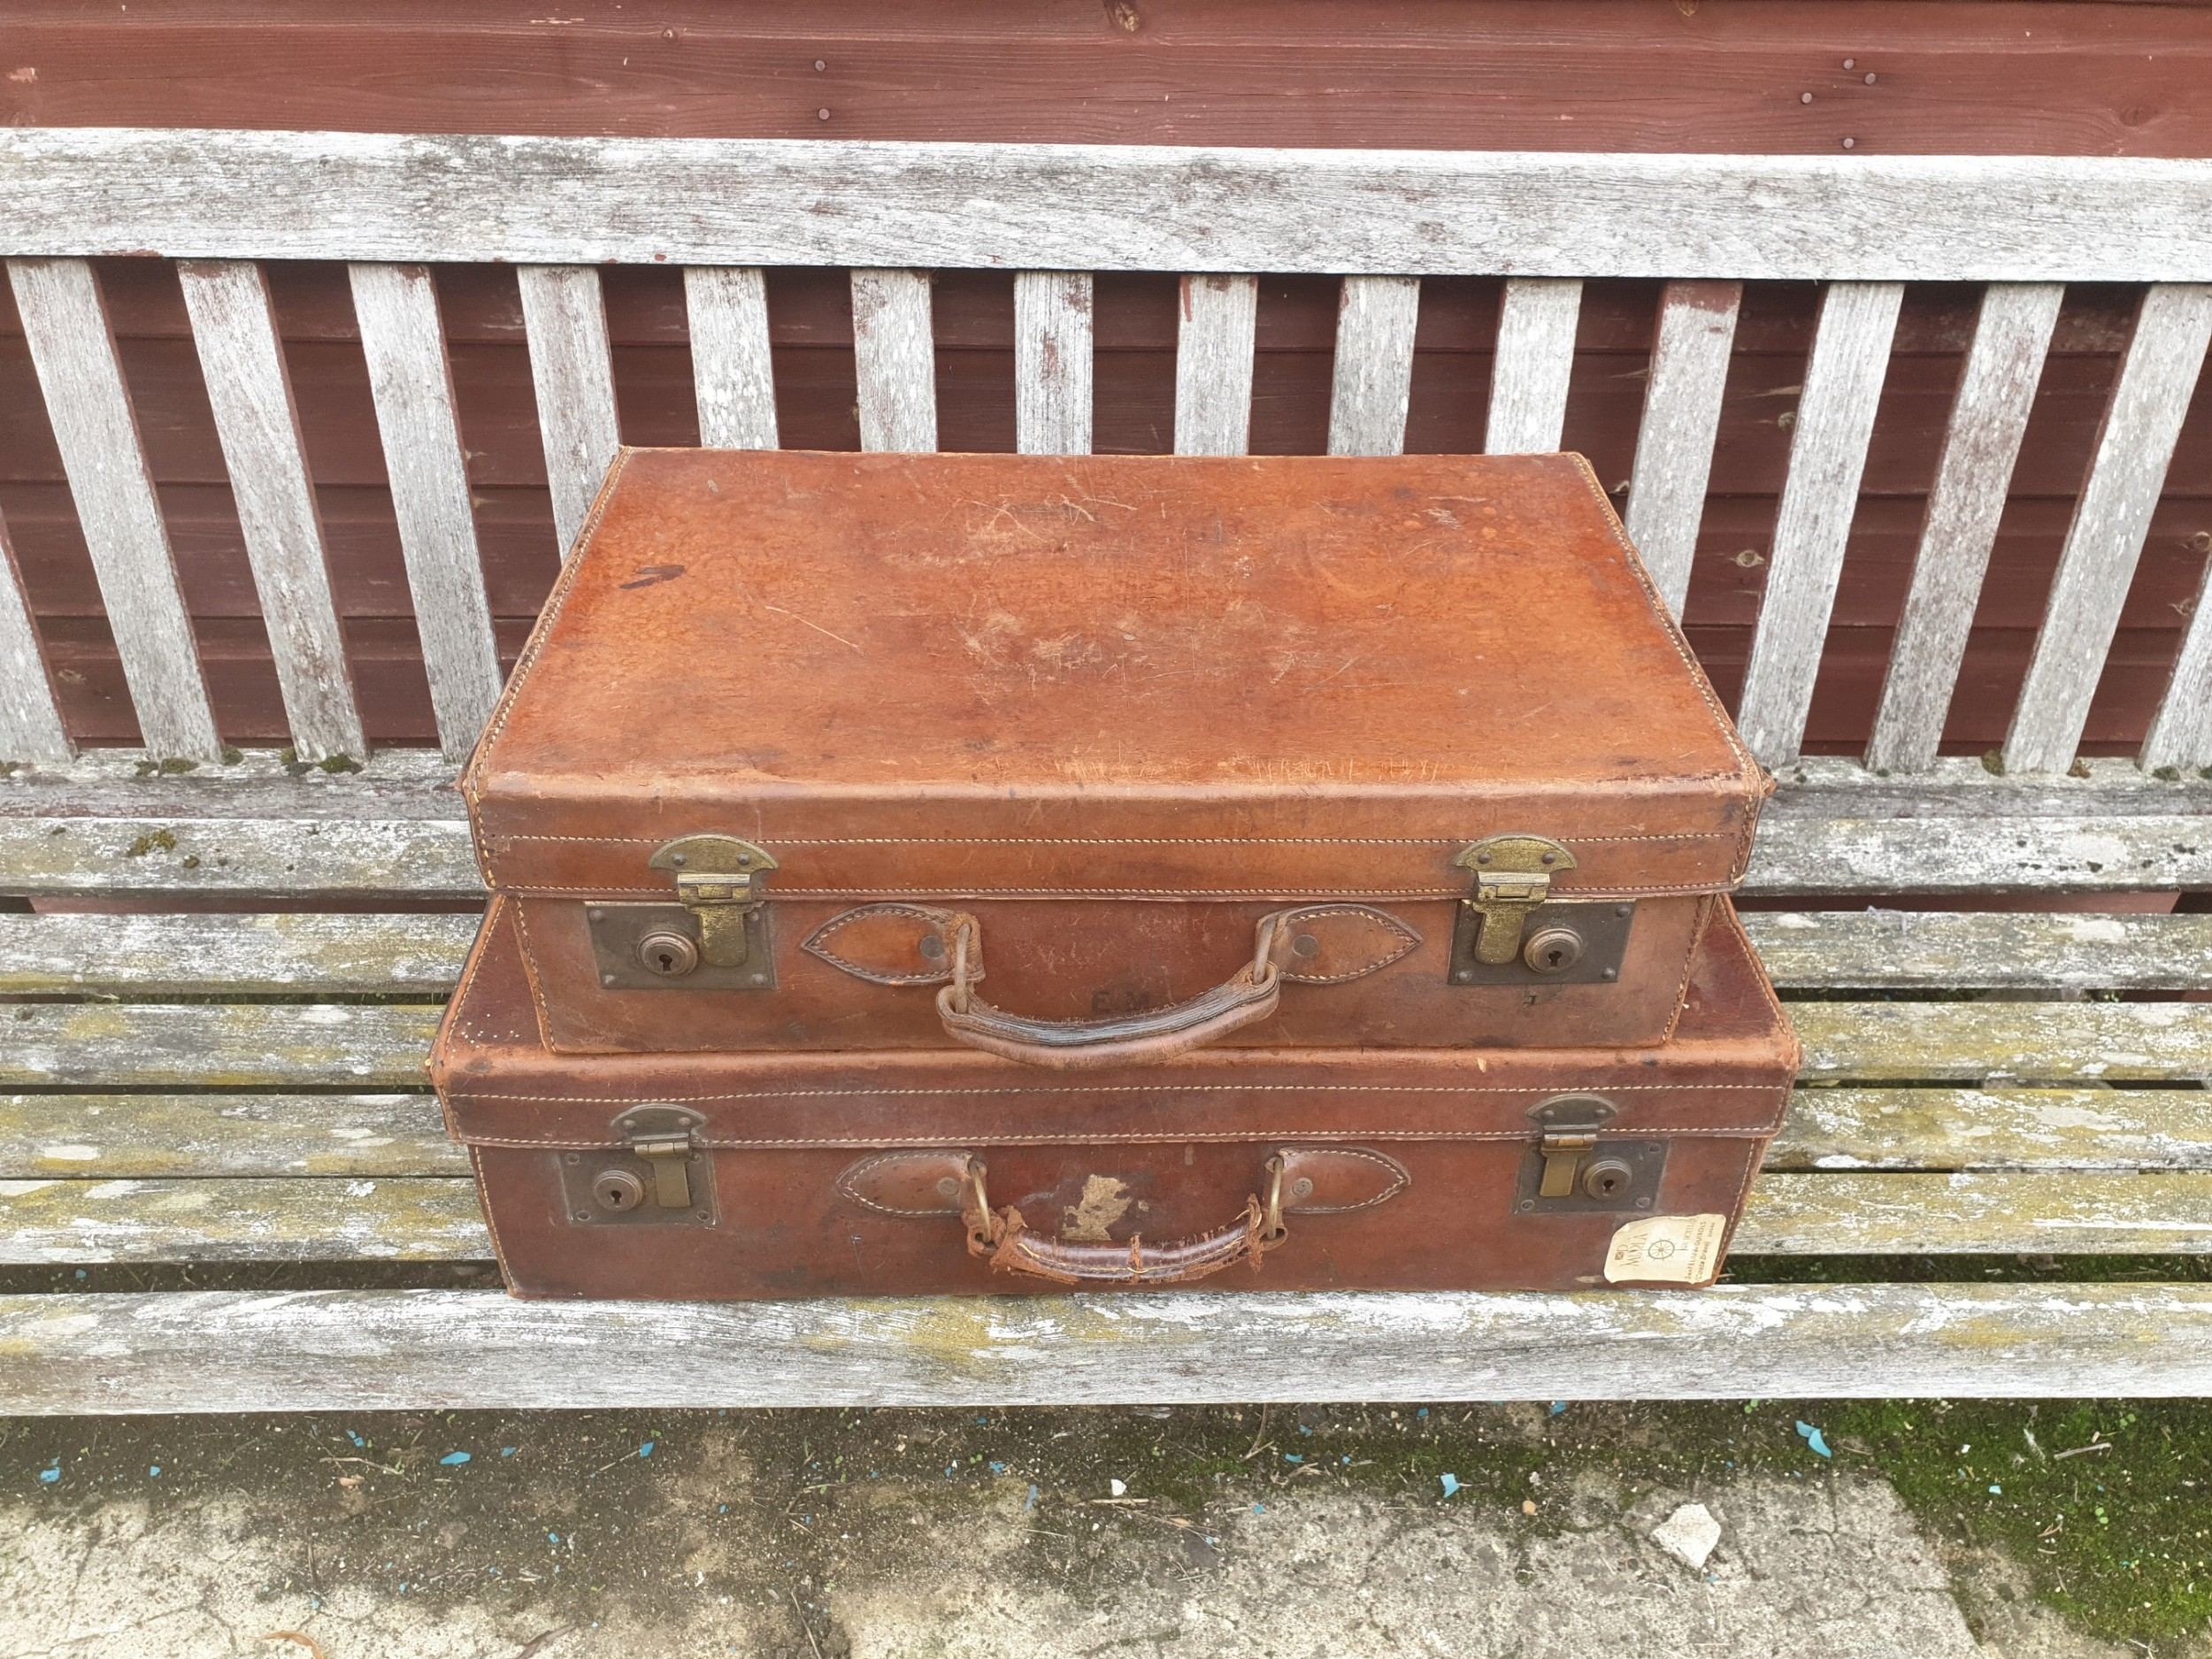 2 leather suitcases